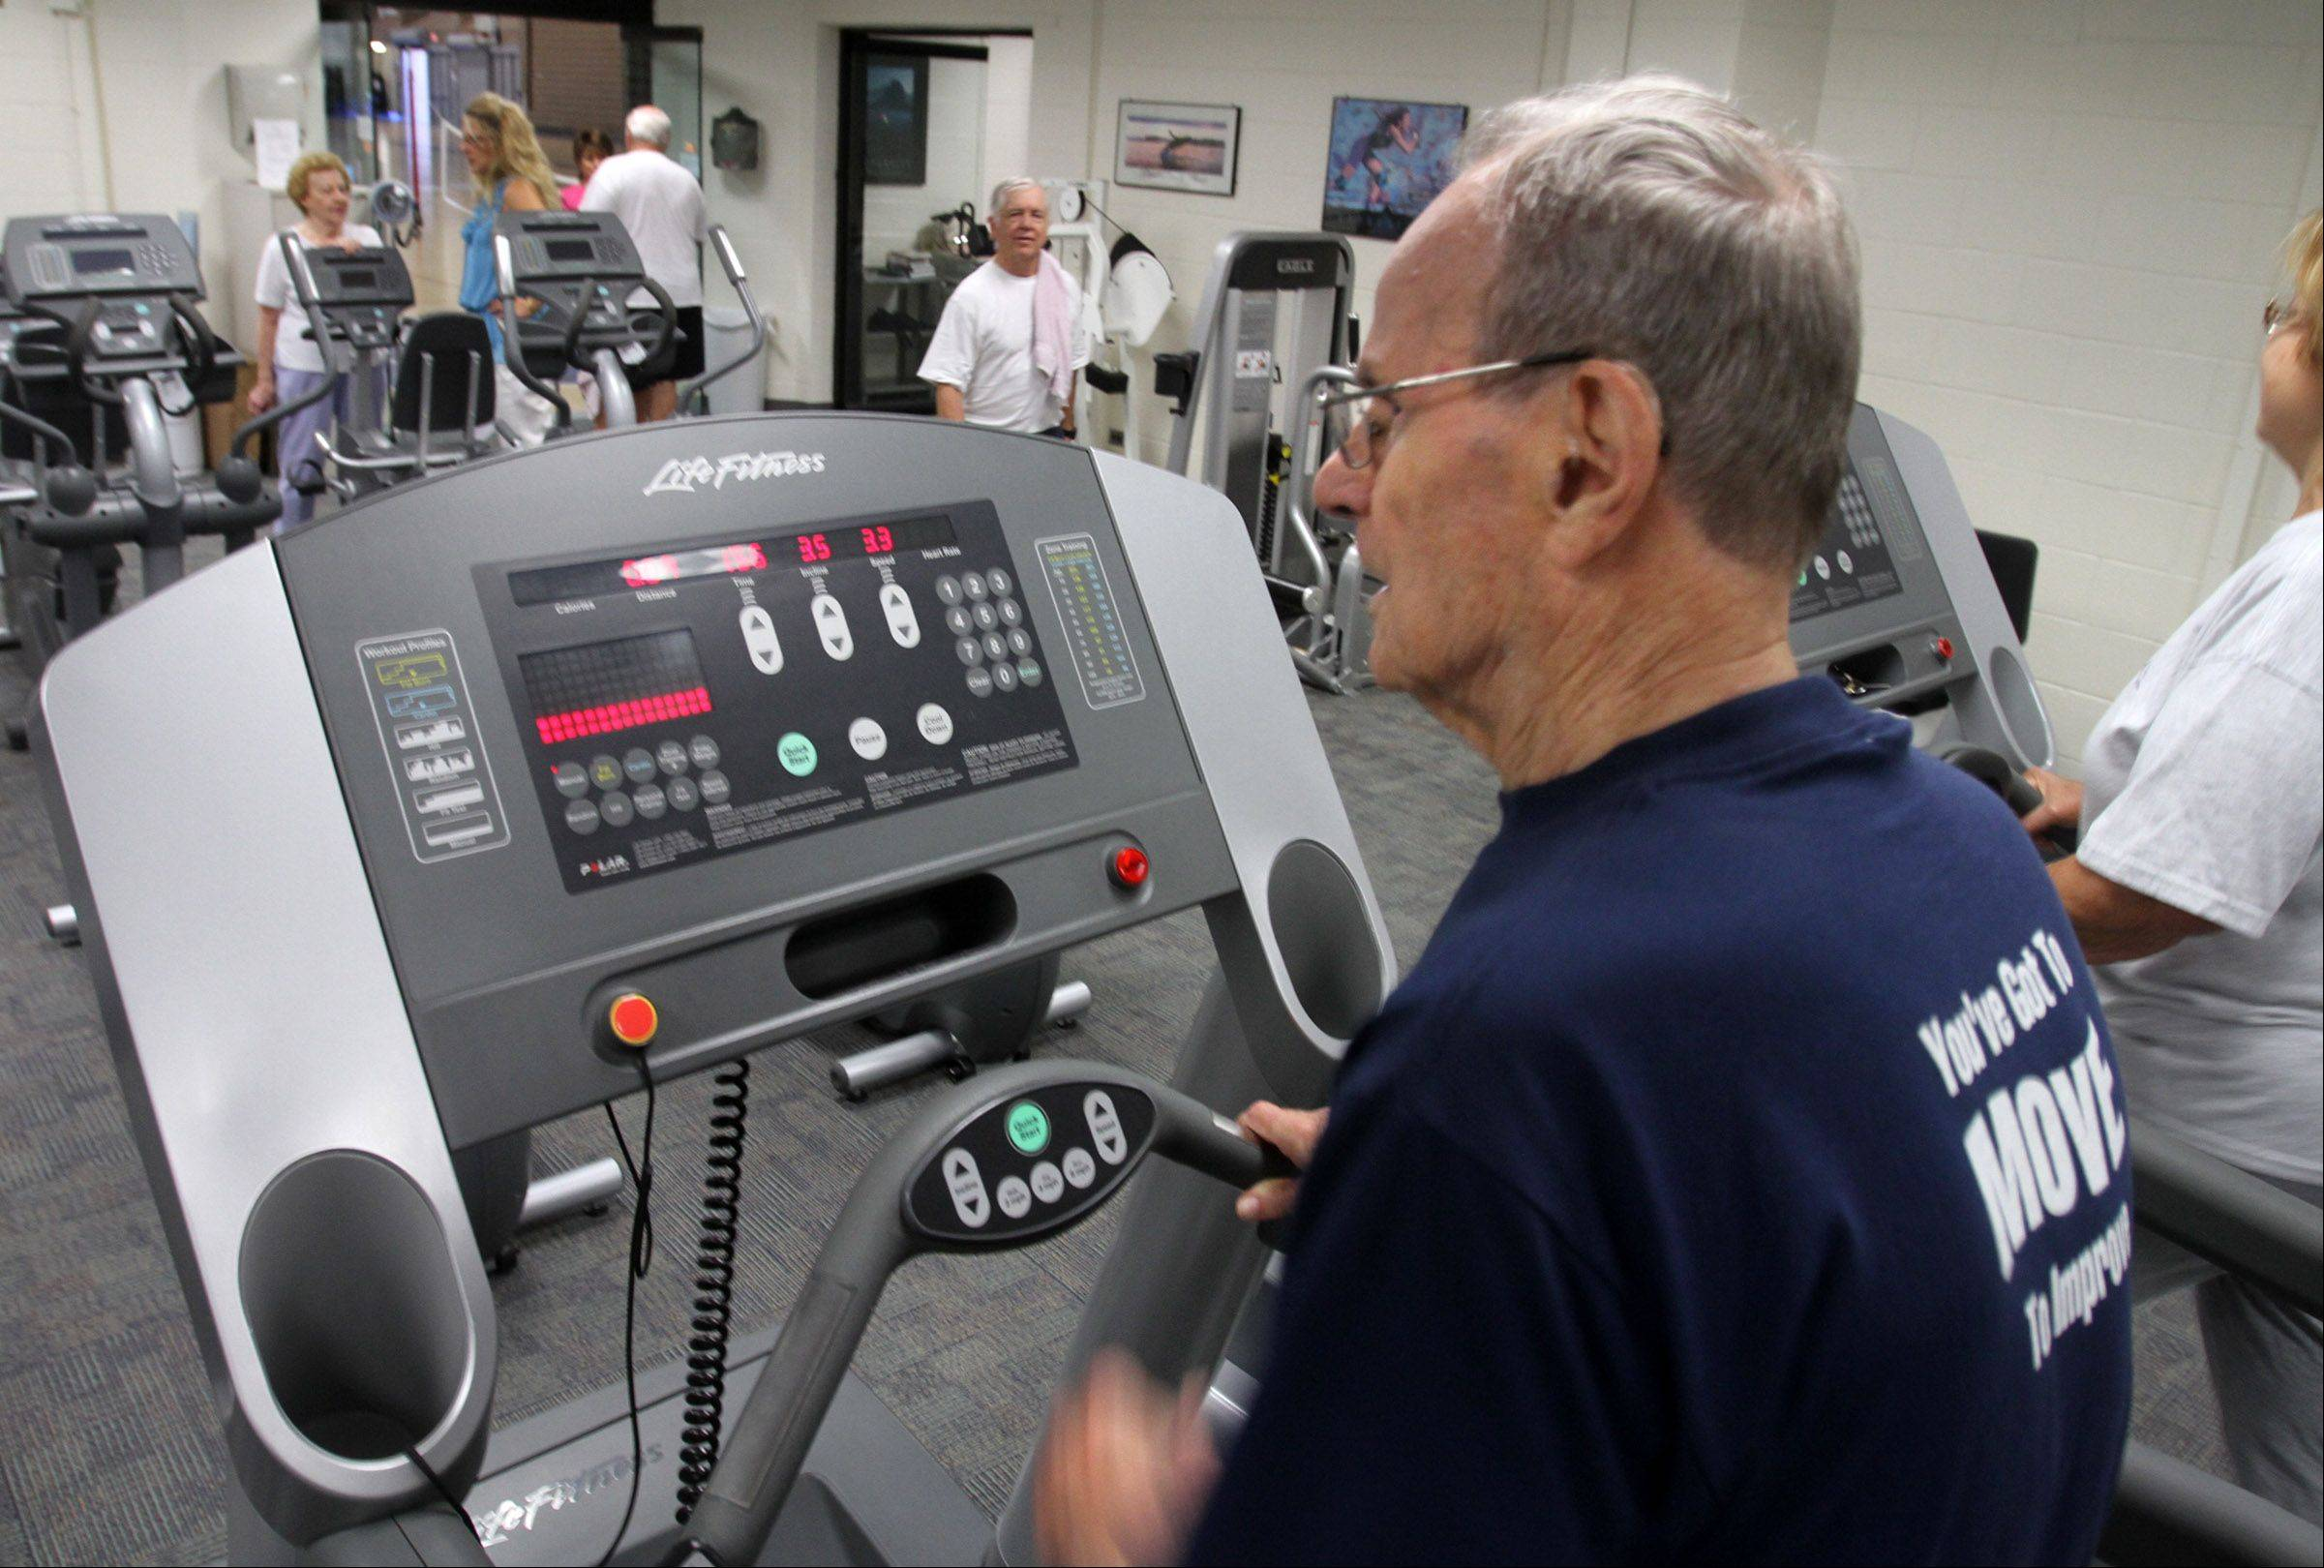 Sam Greco, 90, of Palatine, exercises on the treadmill as part of his daily routine.